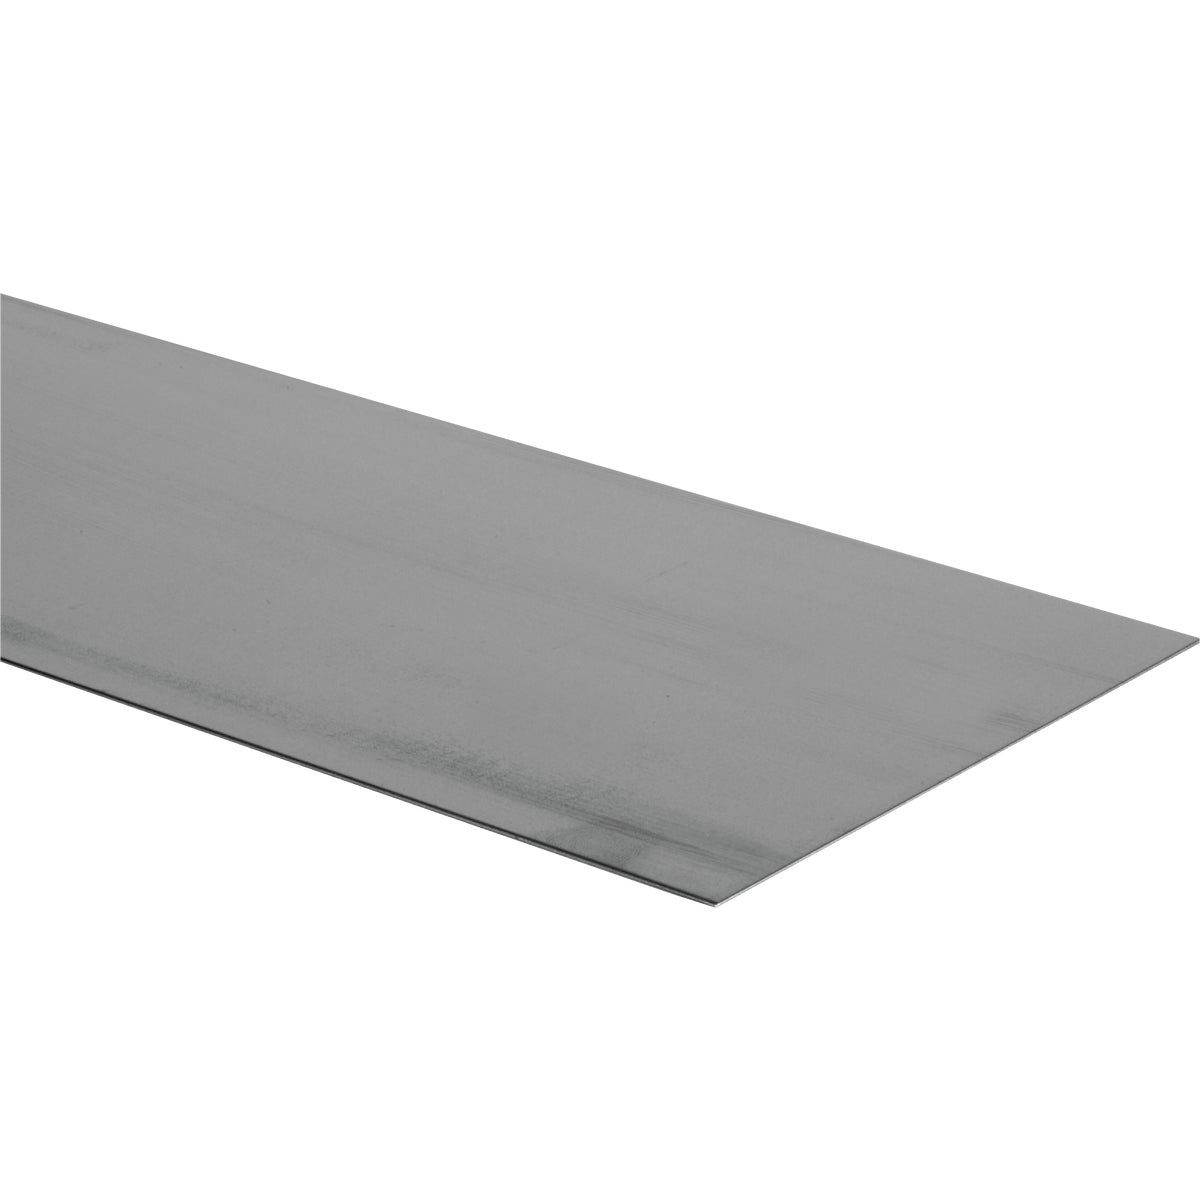 24X24 22GA STEEL SHEET - N301580 by National Mfg Co